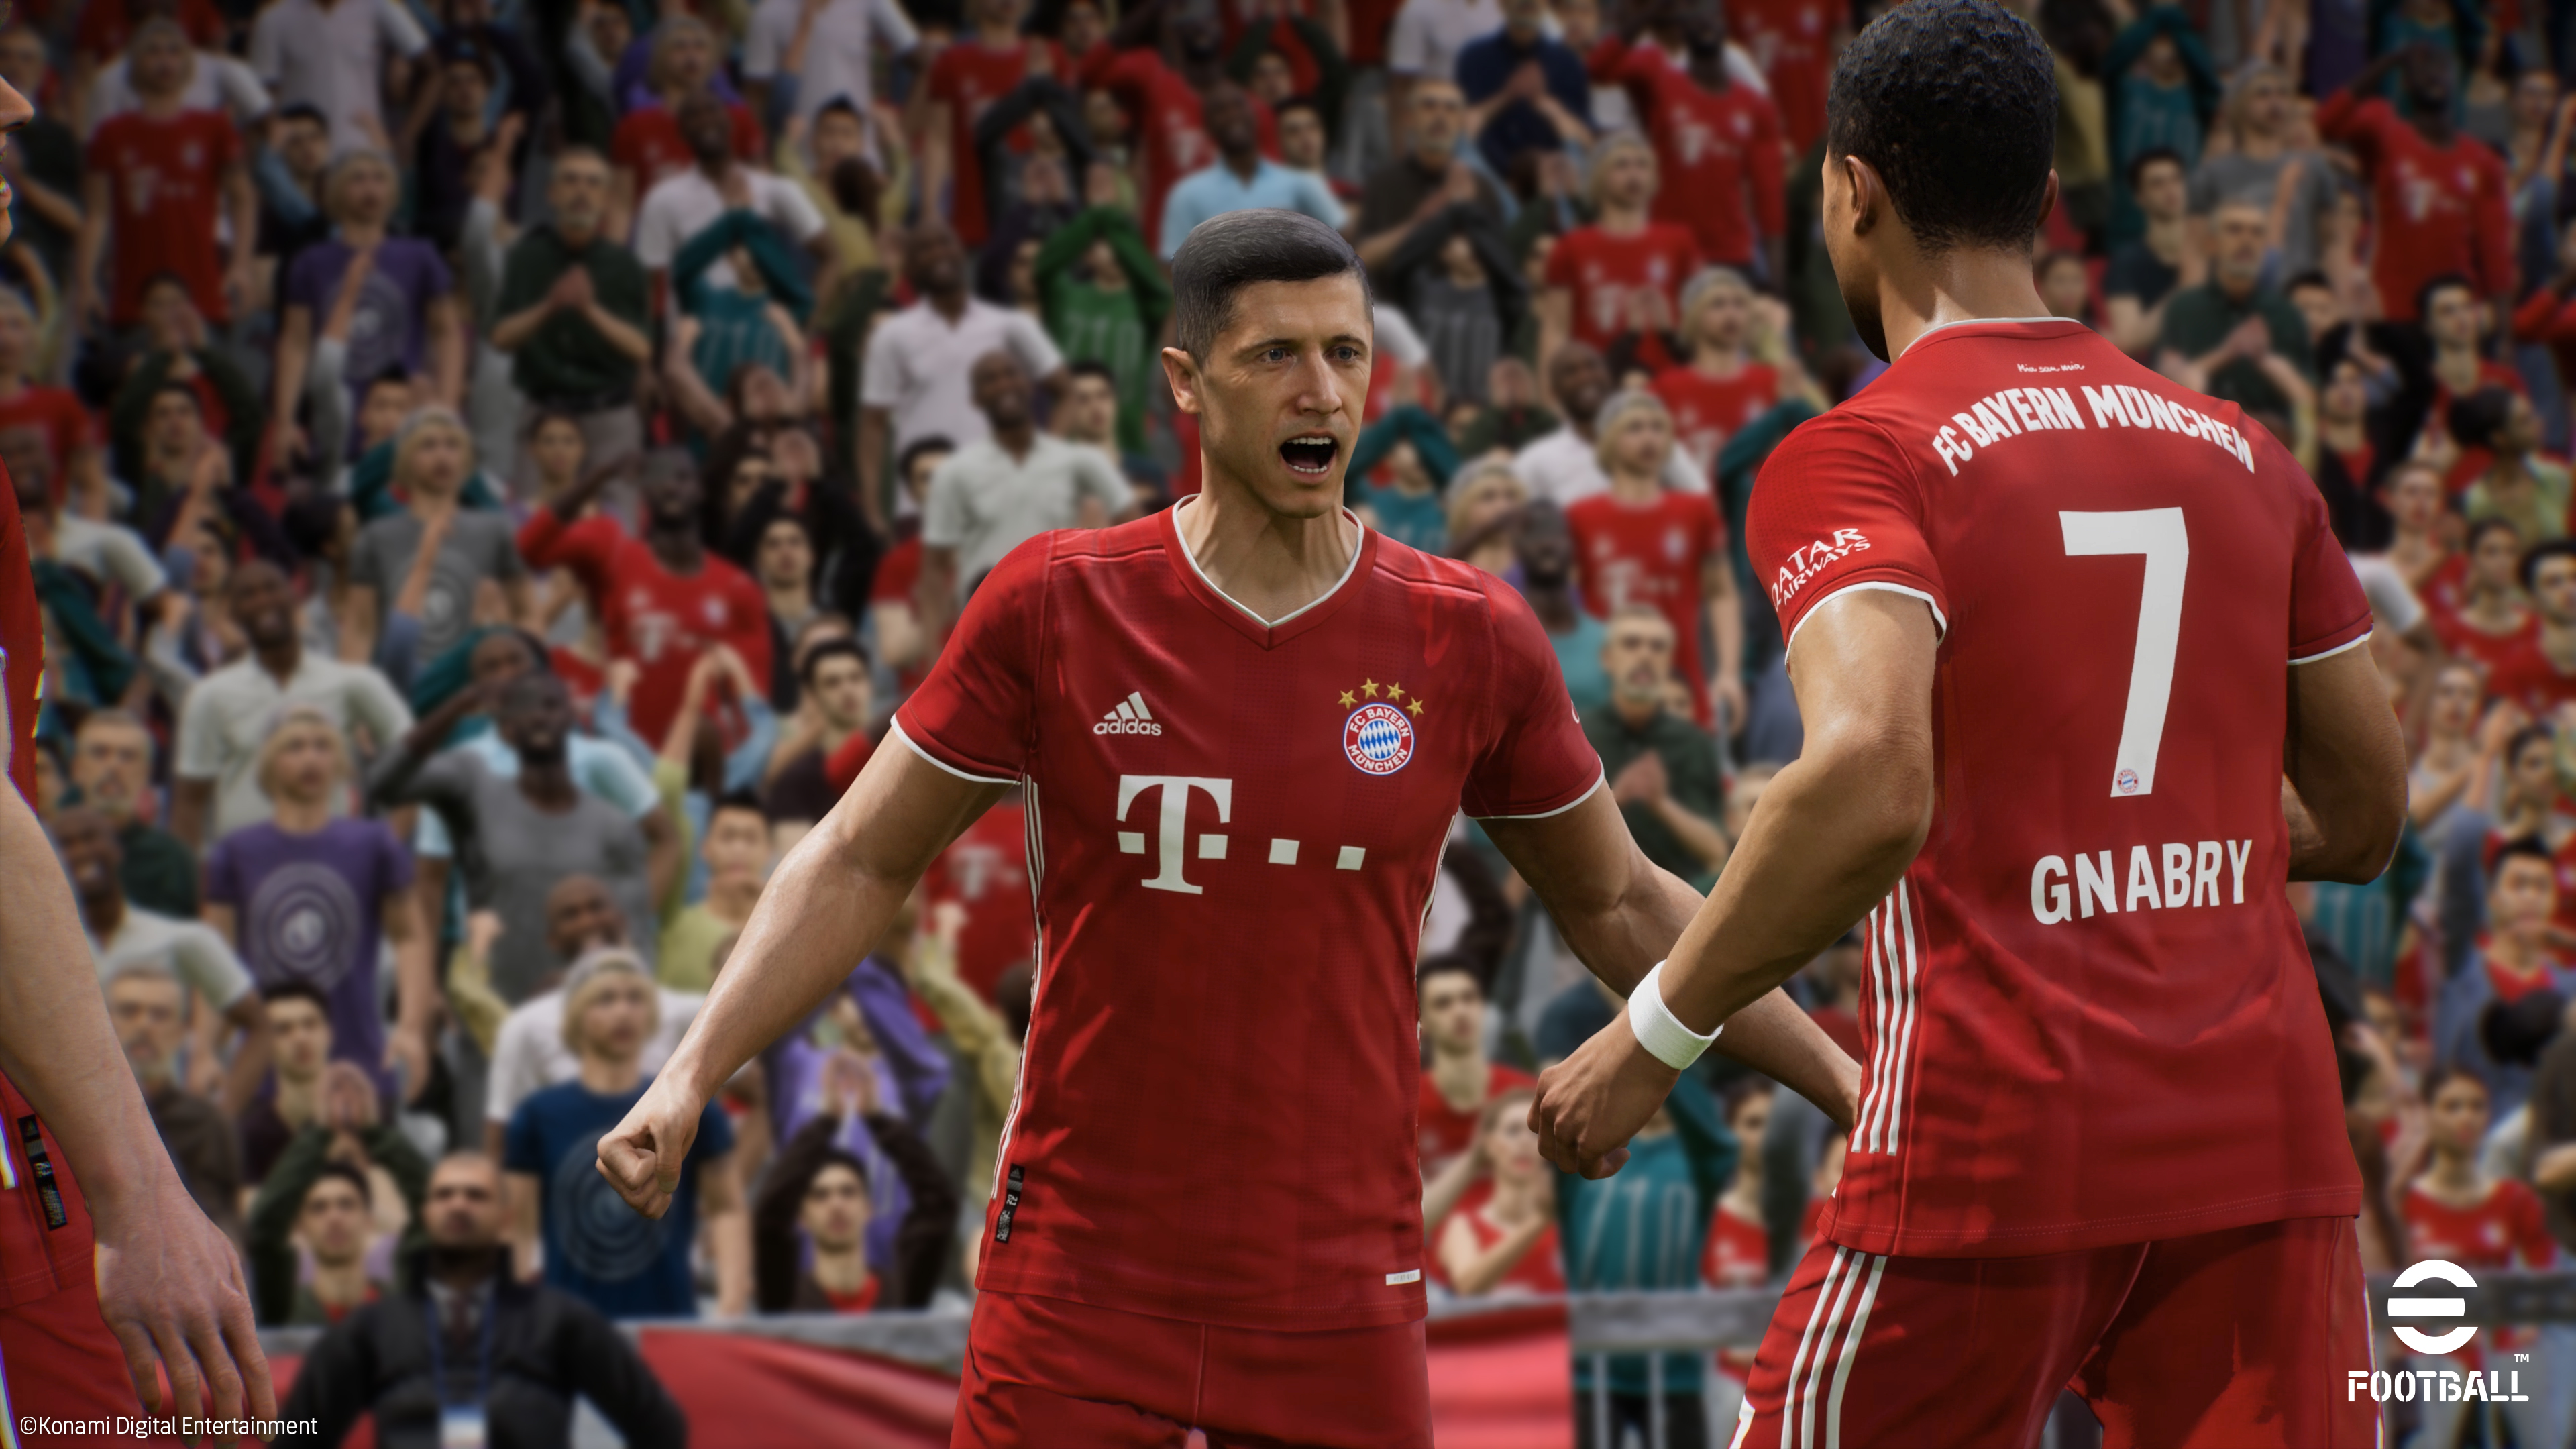 eFootball: Pro Evolution Soccer becomes a Free-2-Play game